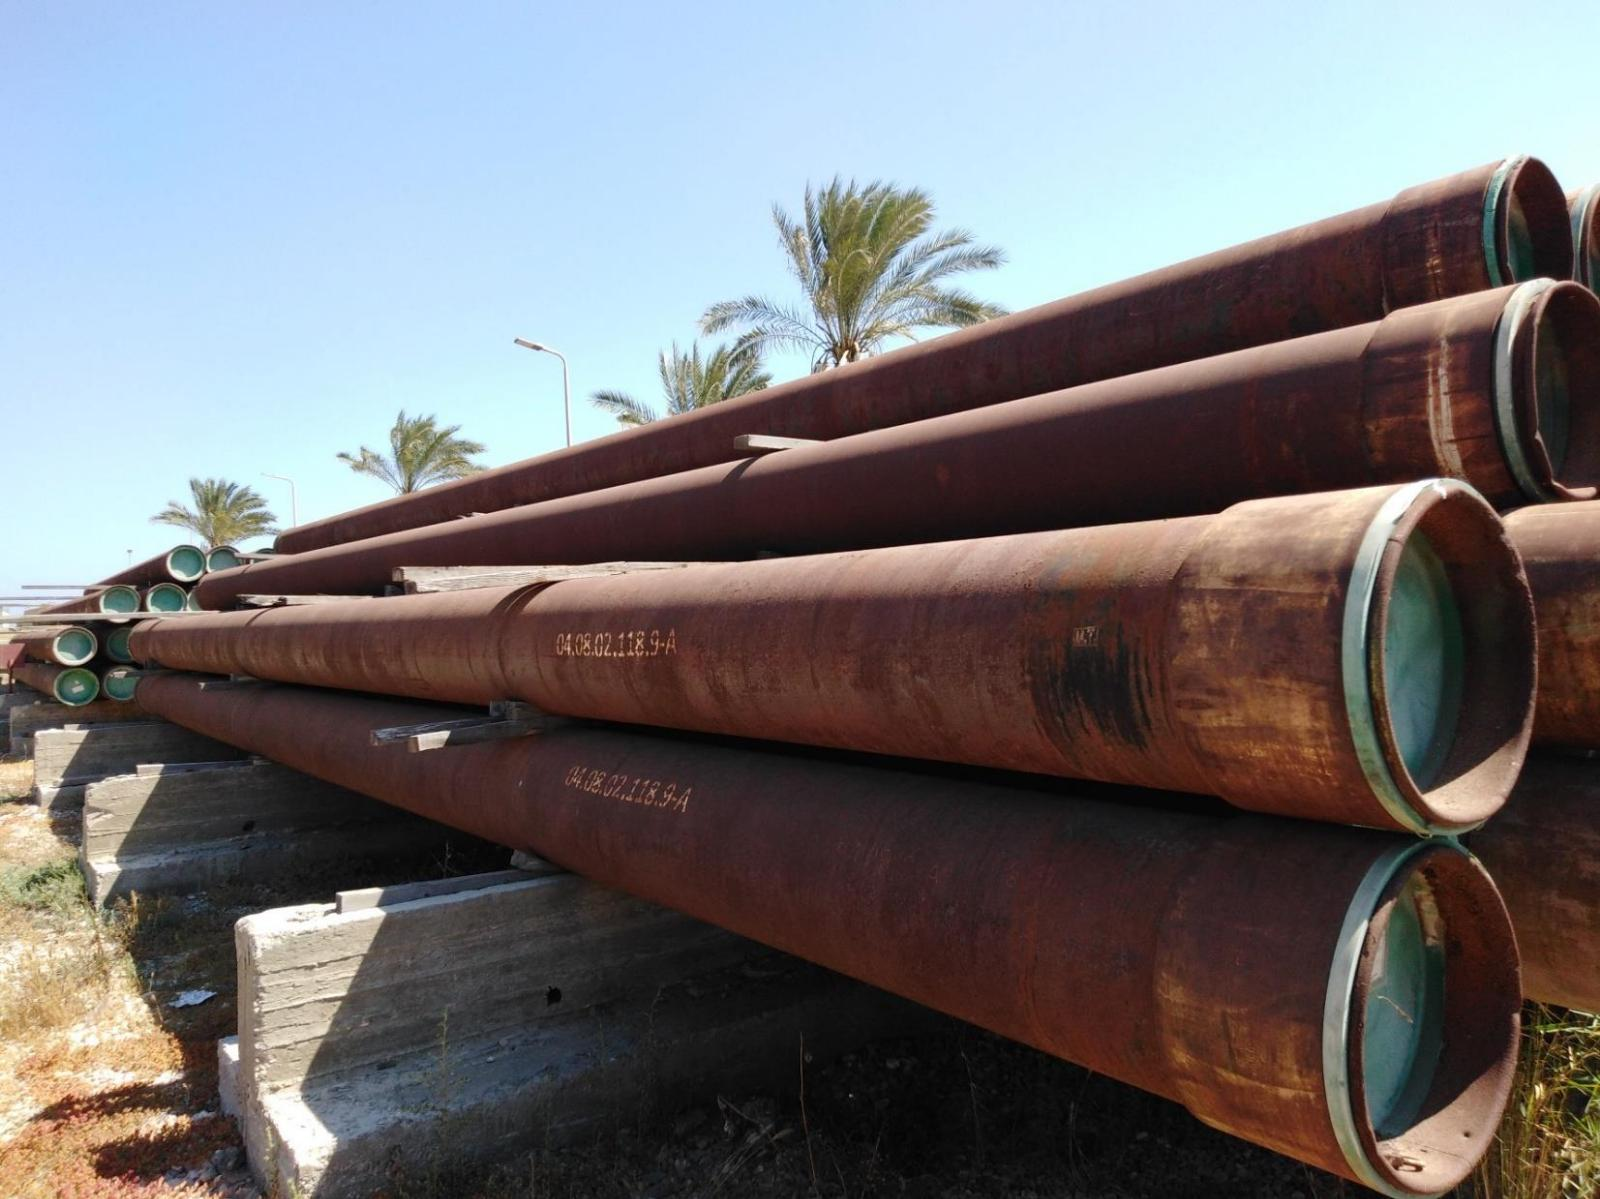 18 5/8 126# C95 BTC R3 Surplus Casing (4,400 Feet / 251 Metric Tons)